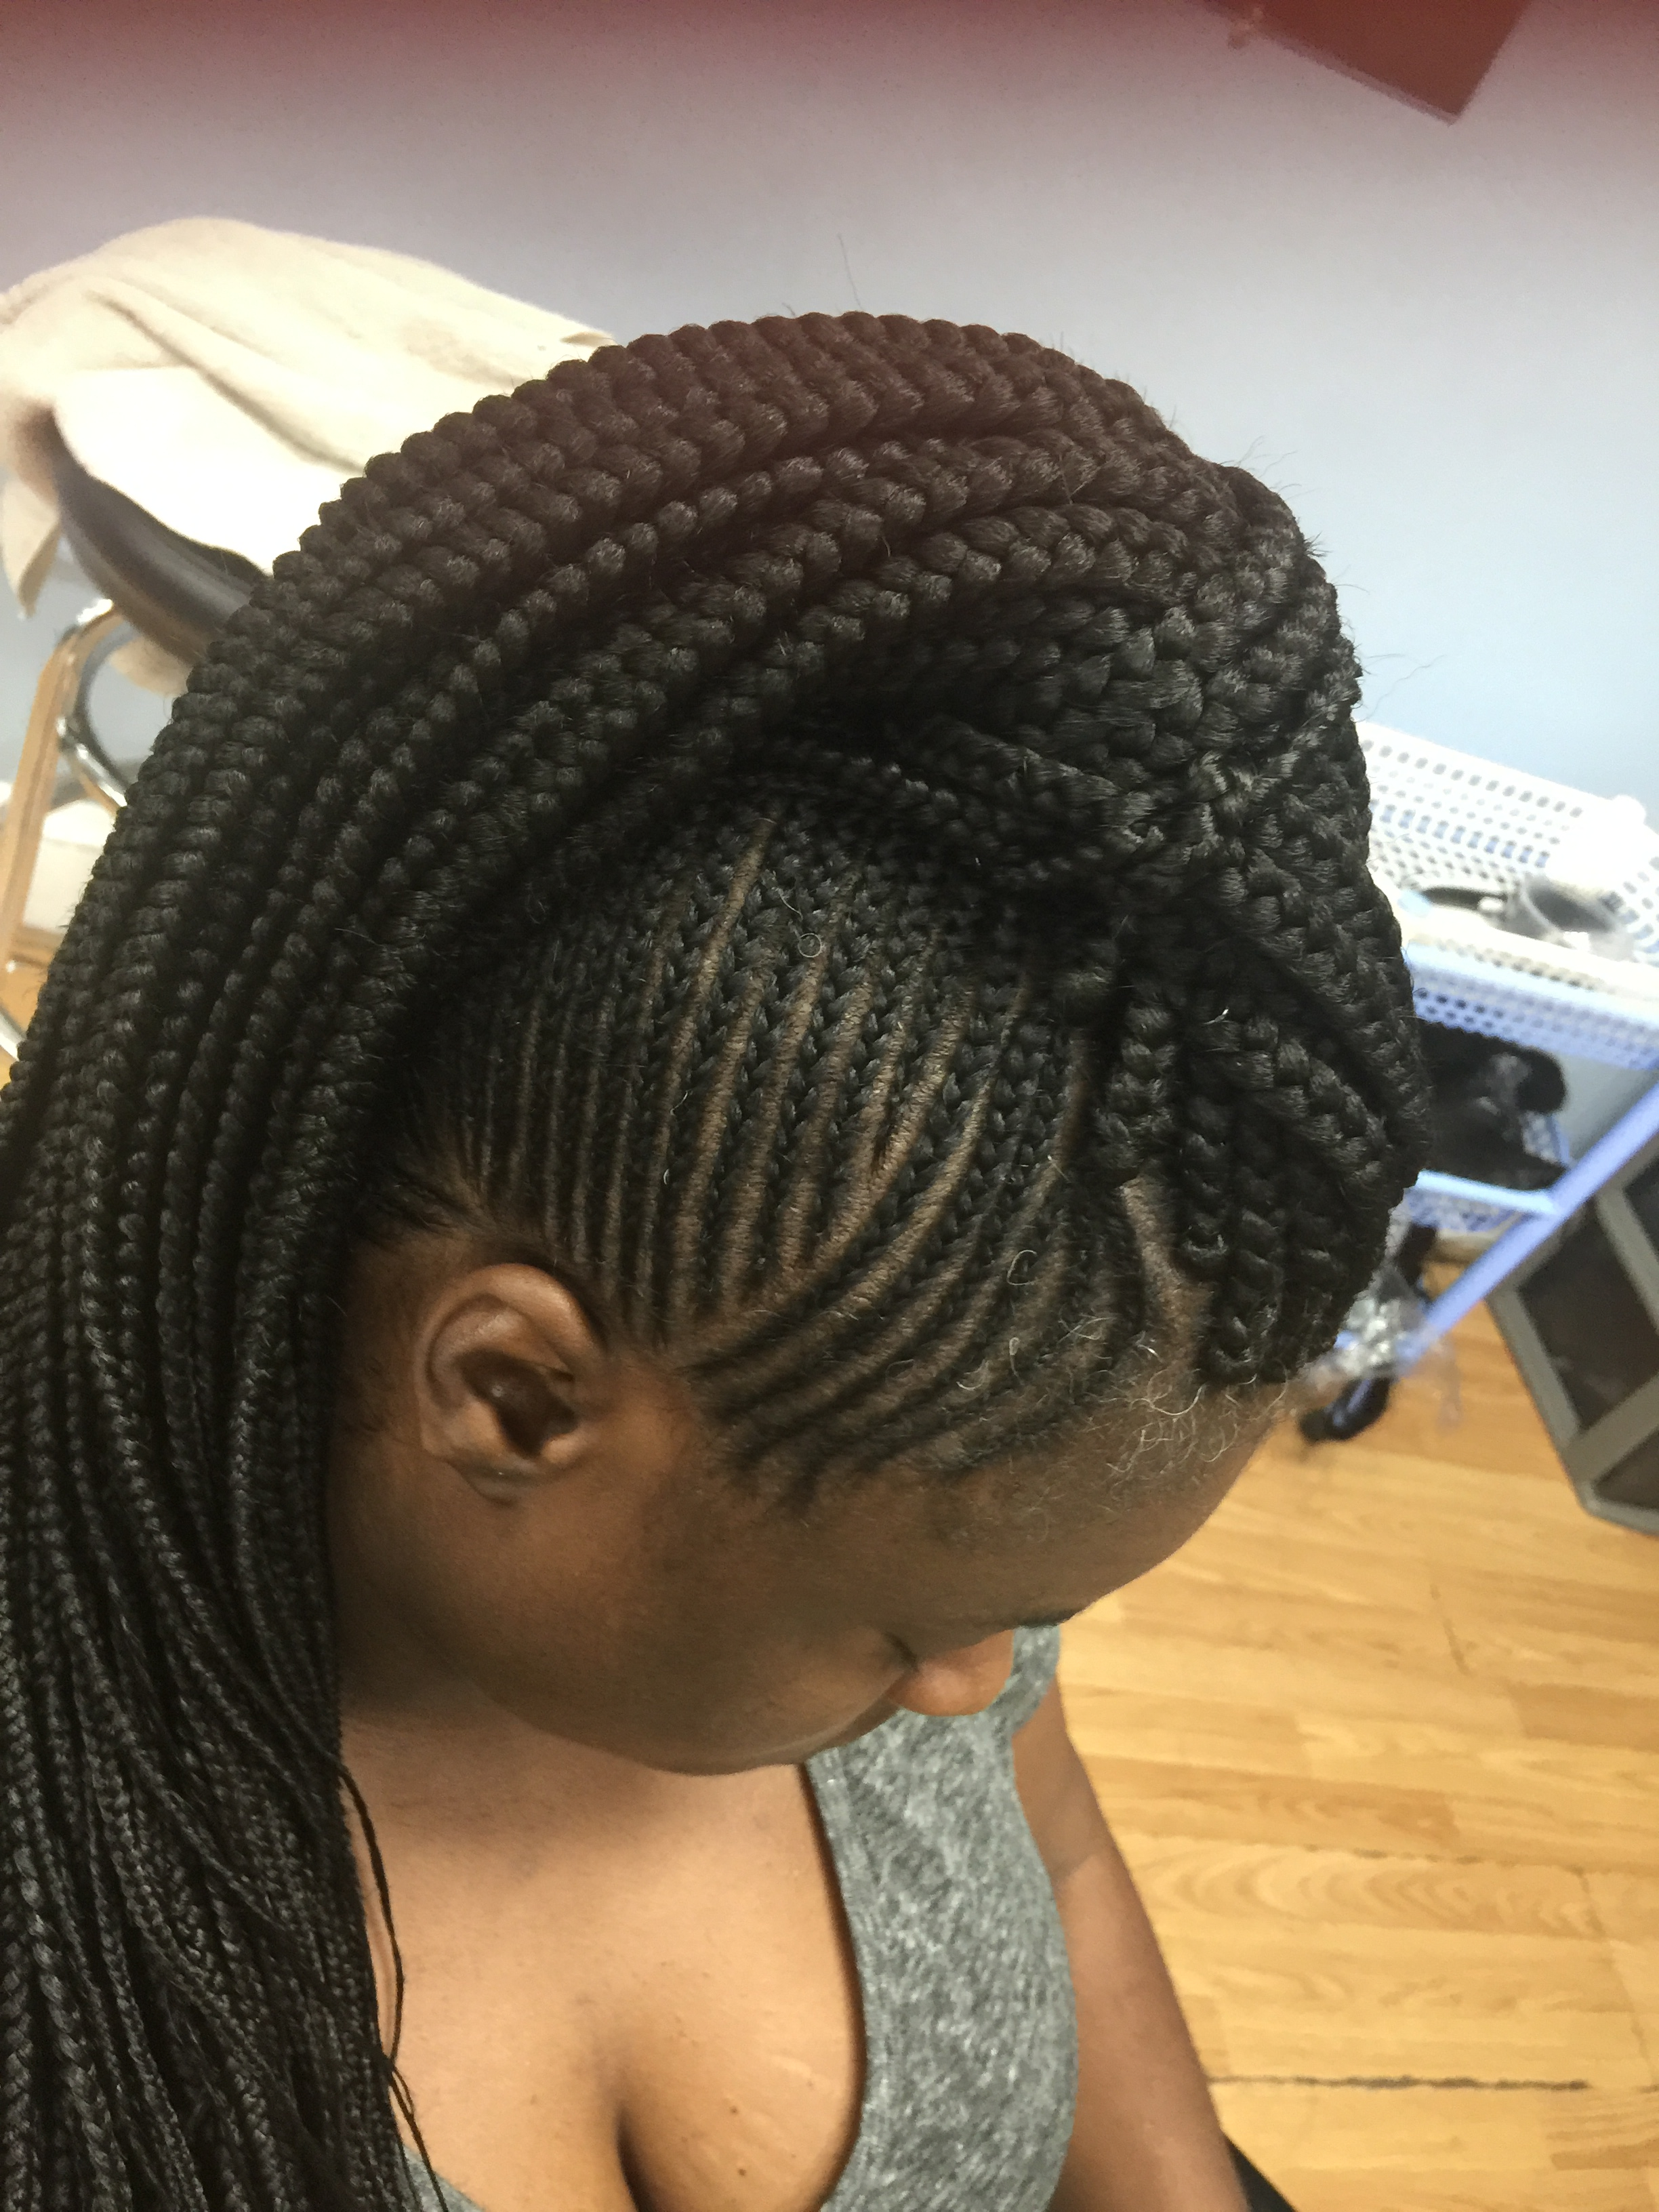 Aisha Hair Braiding Specialize In All Types Of Braids